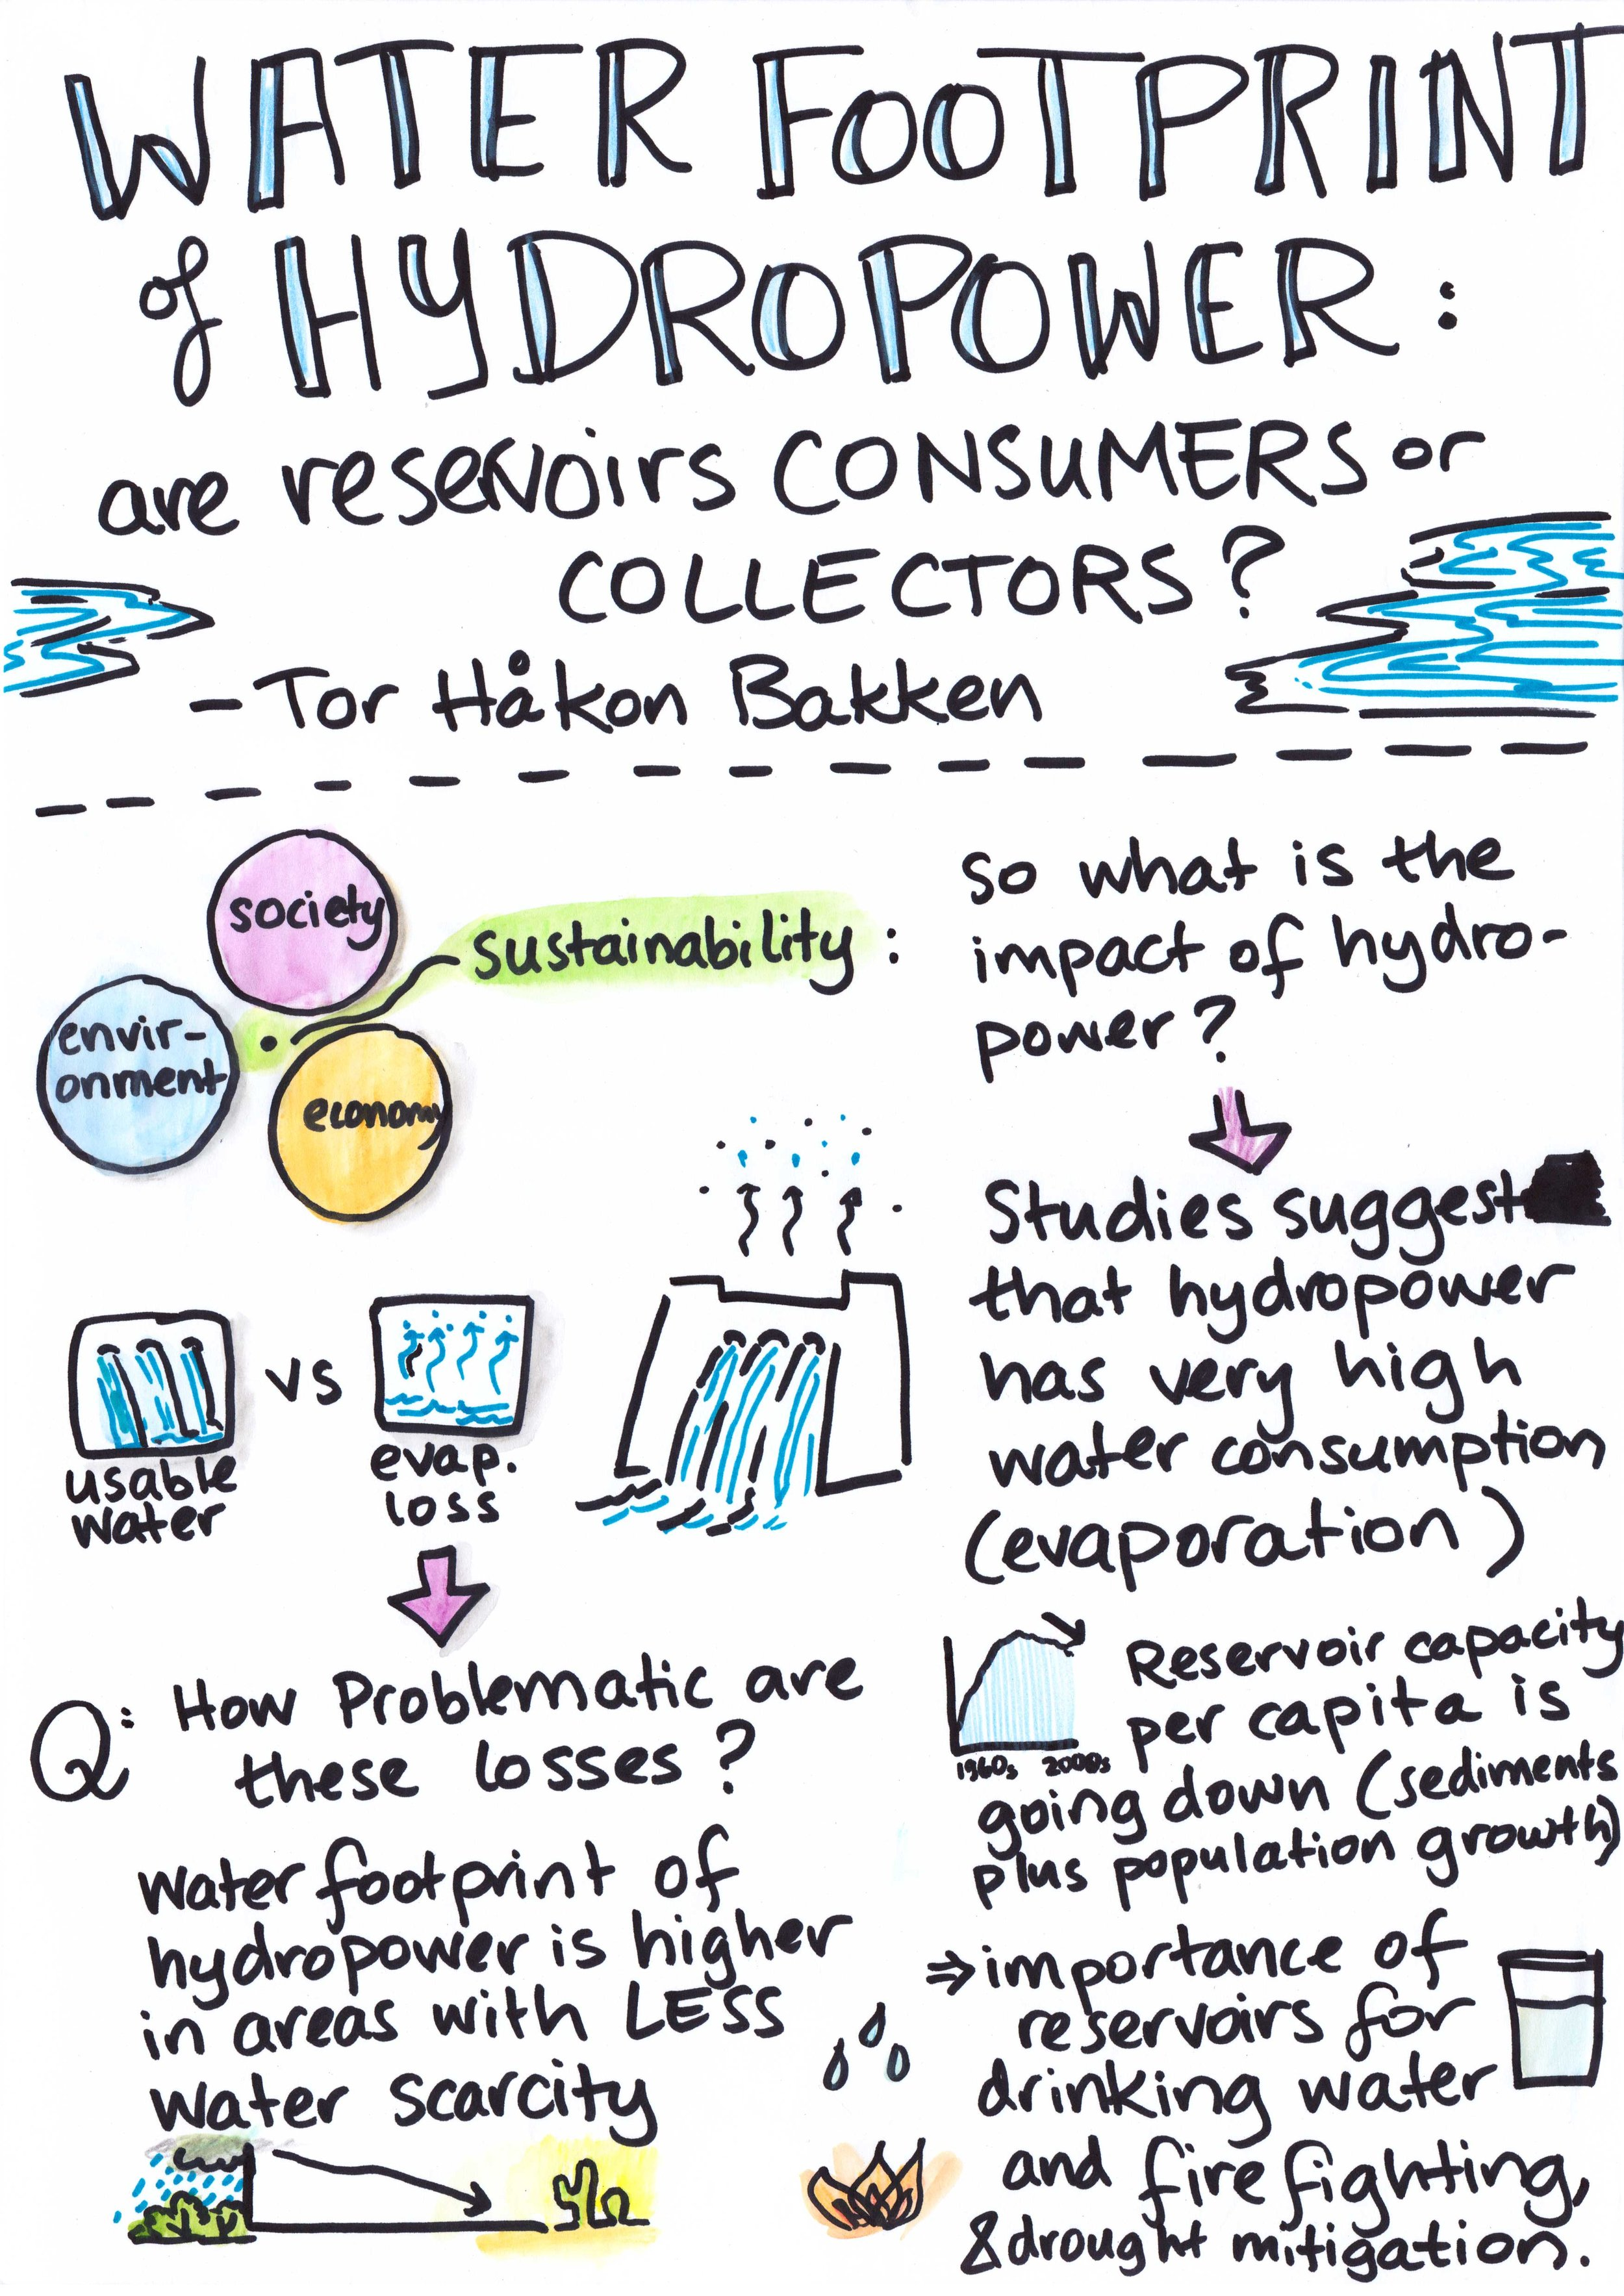 The keynote talk by Tor Håkon Bakken explored whether hydropower reservoirs consume more energy than they provide; the talk especially touched on the issue of loss through evaporation in hydropower.